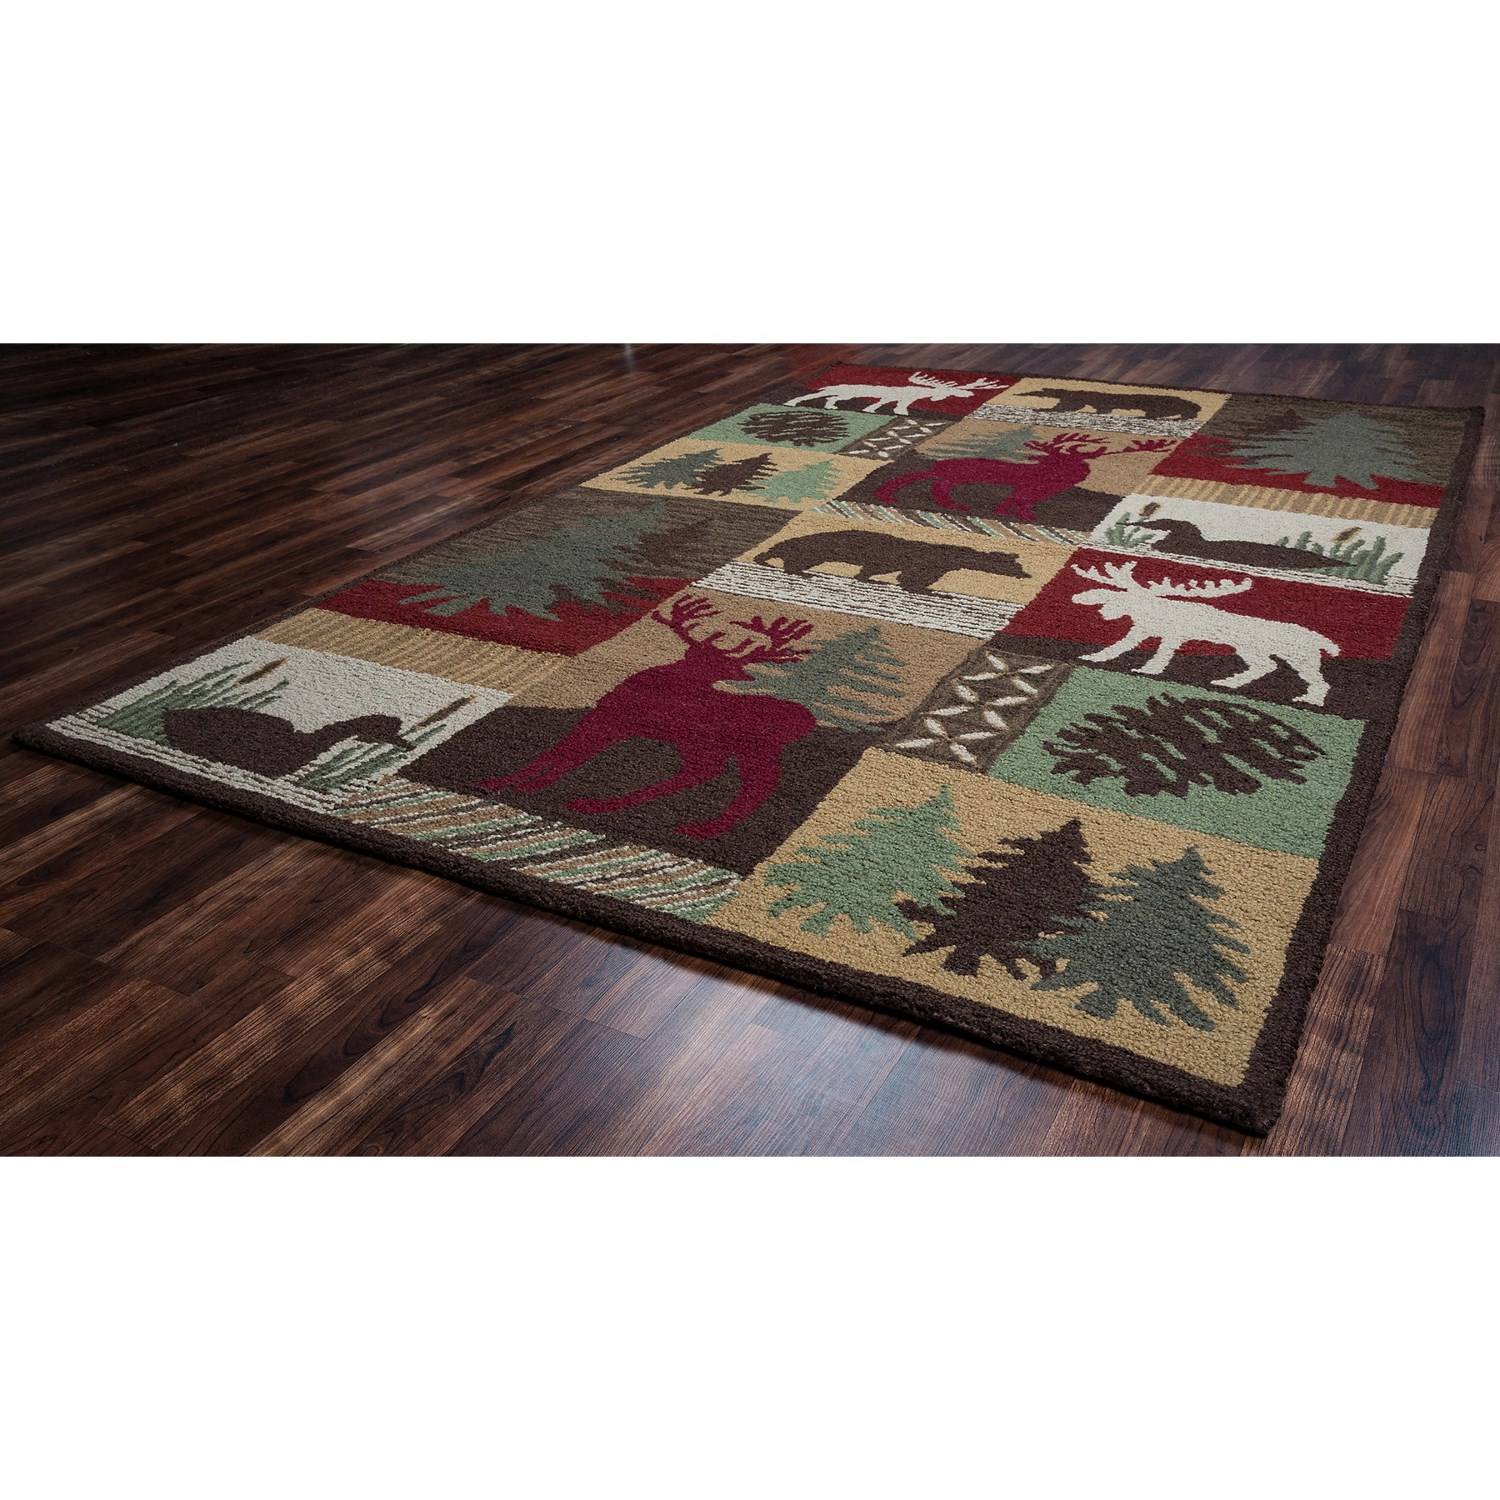 Rizzy Home Country Area Rug 8x10 New Zealand Wool